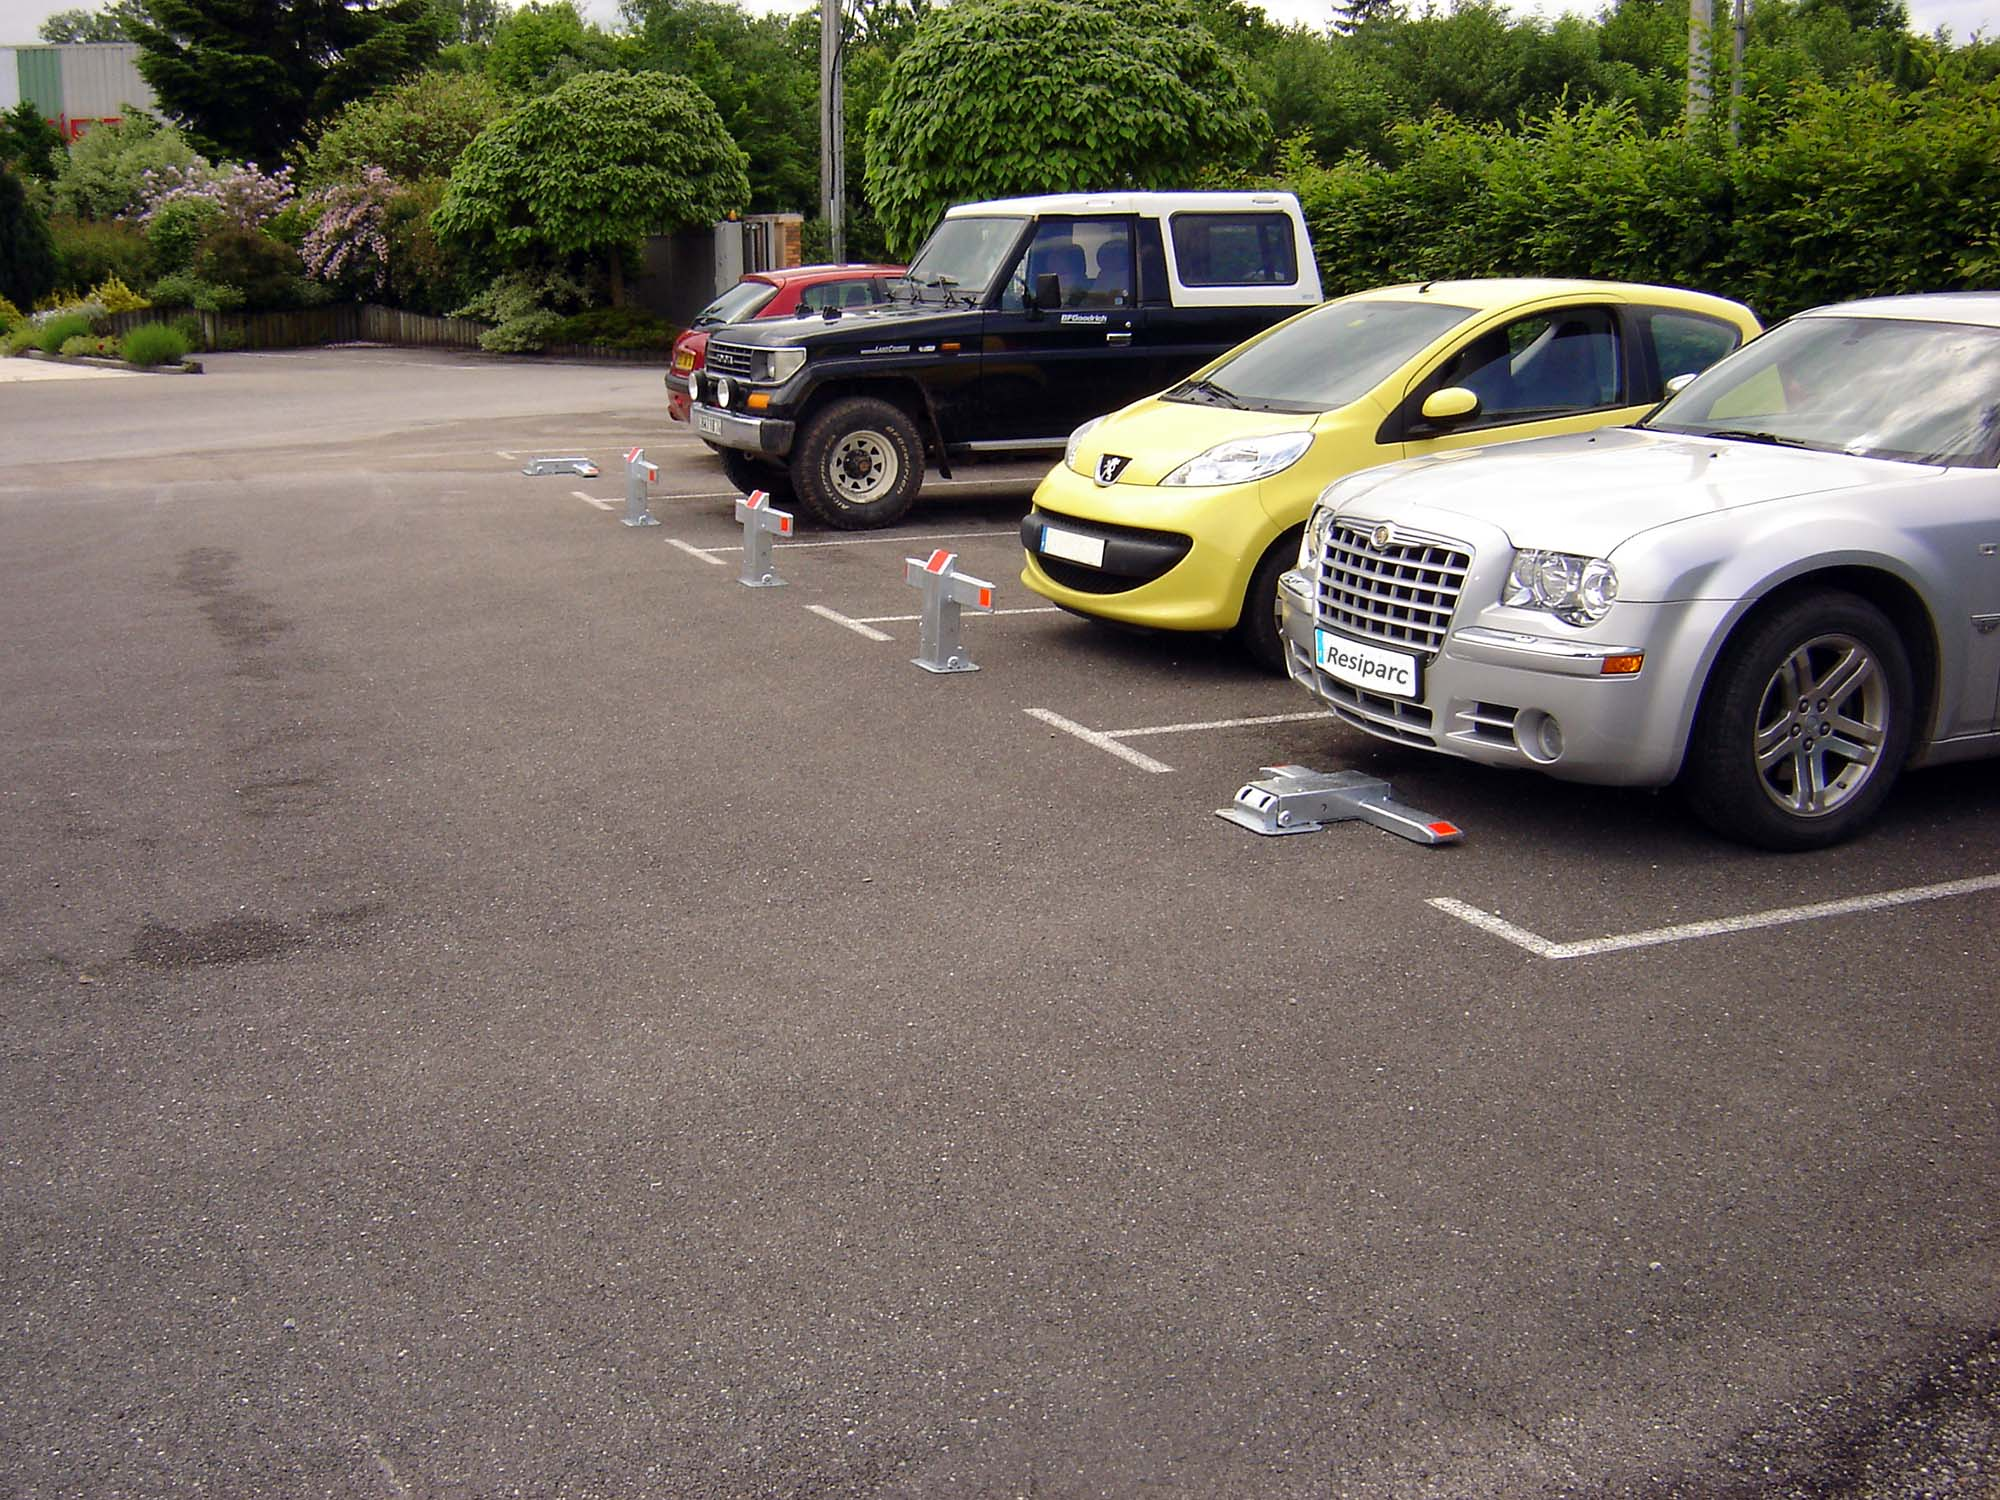 brasier-industrie-resiparc-mise-en-situation-image-plusieurs-voitures-parking